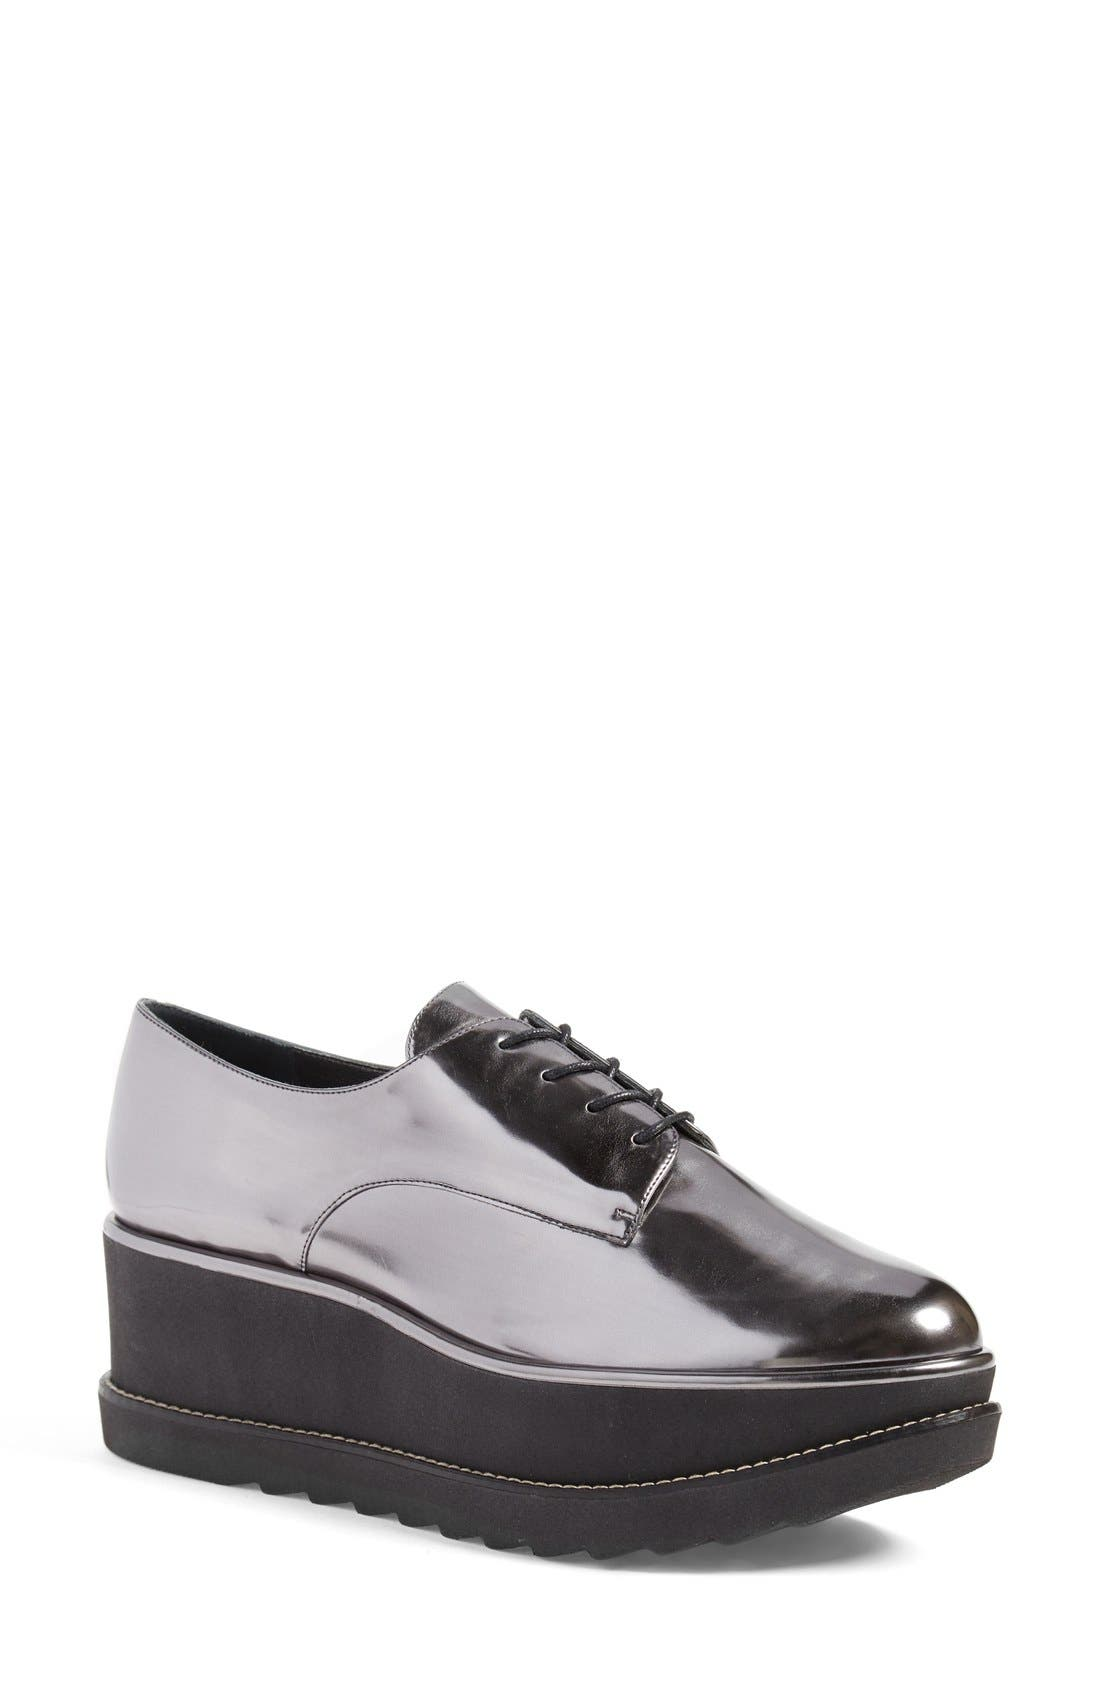 Alternate Image 1 Selected - Stuart Weitzman 'Kent' Flatform Oxford (Women)